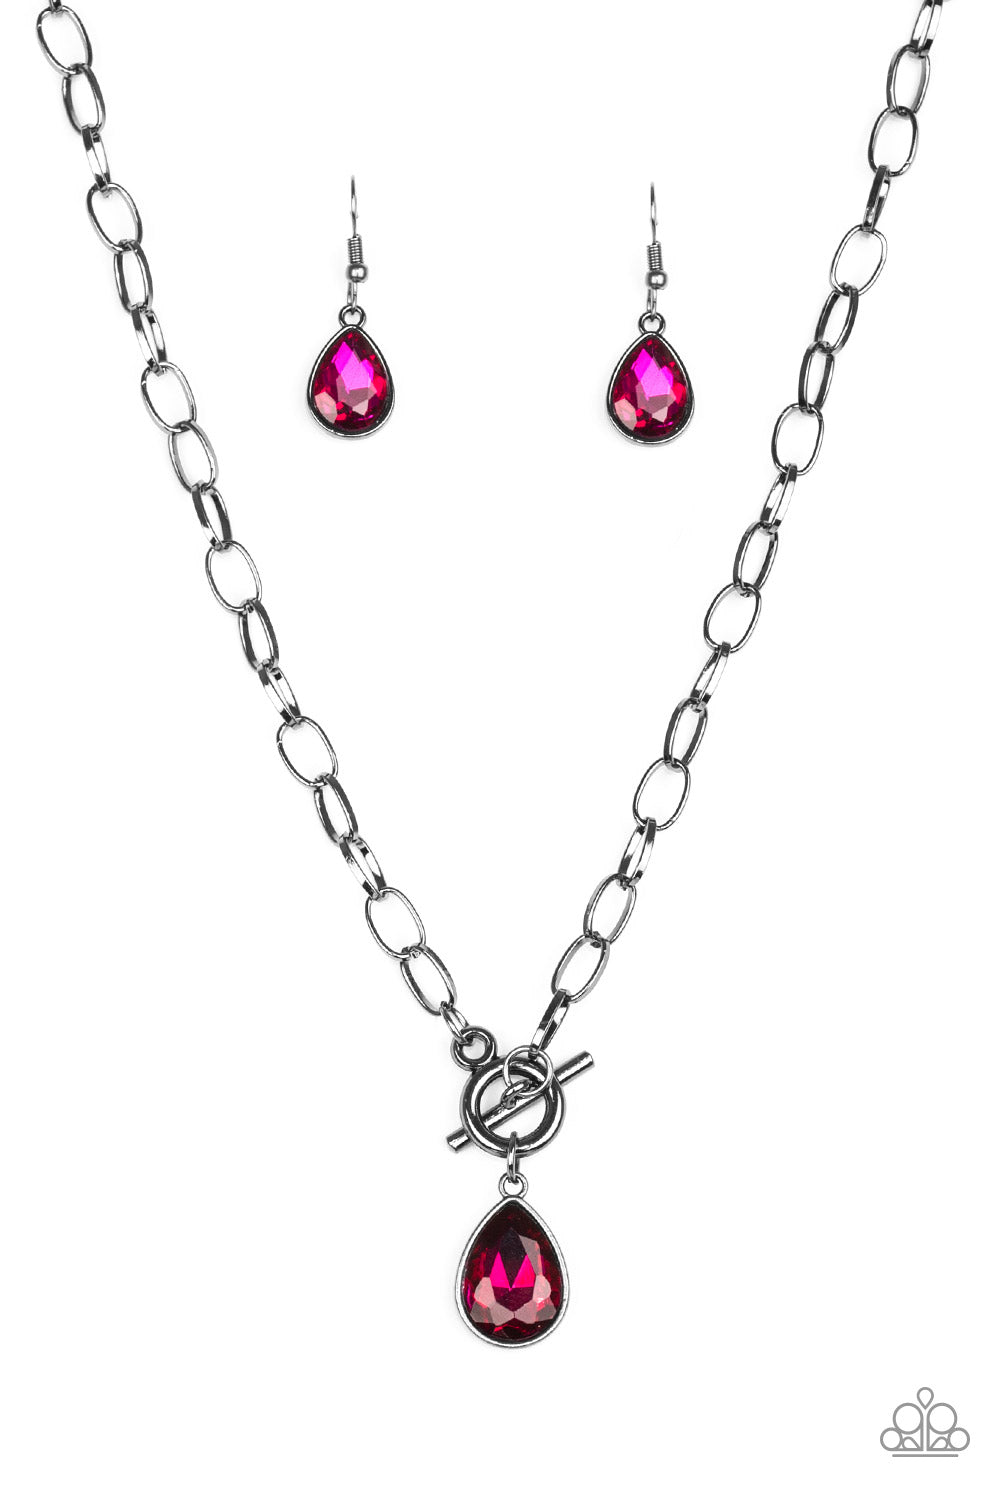 Paparazzi Necklace ~ So Sorority - Pink